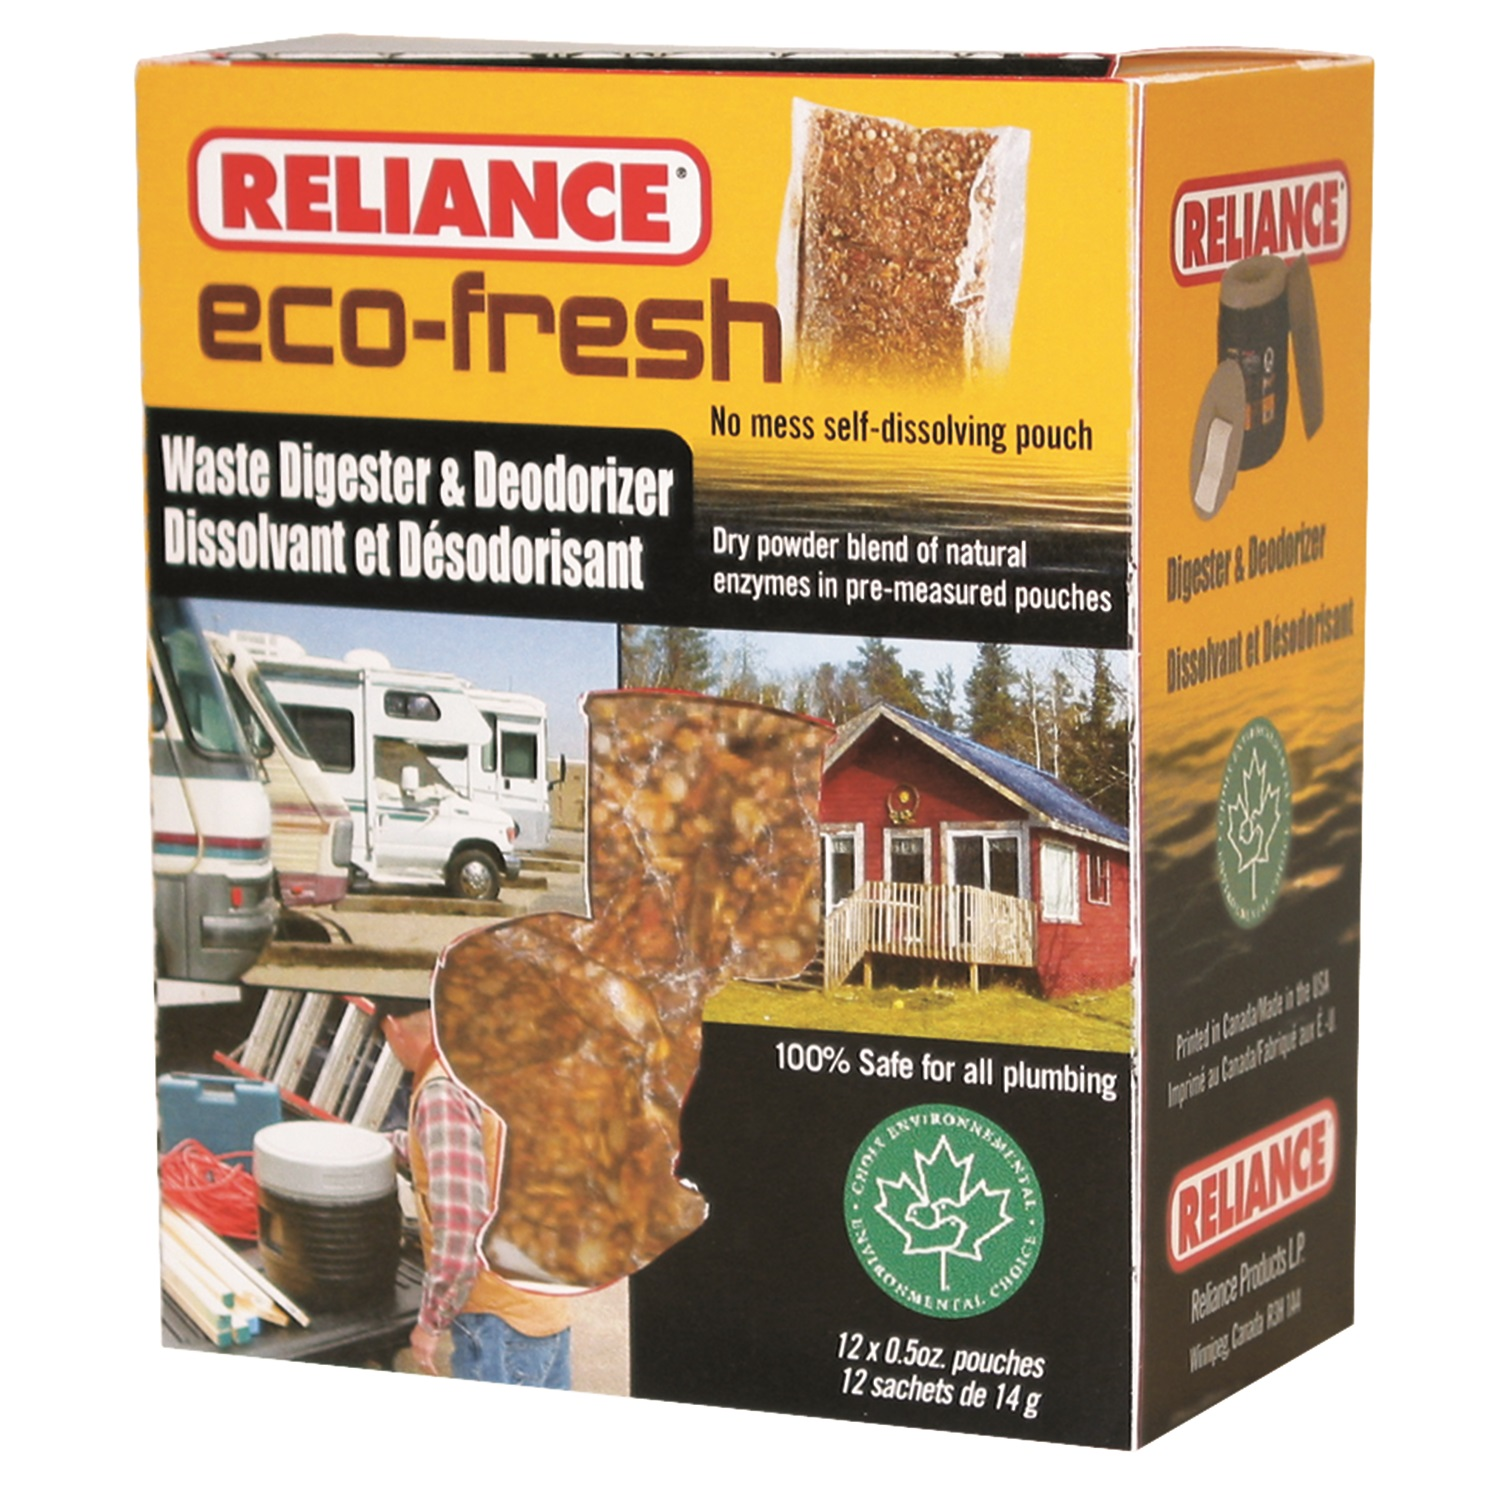 Reliance Eco-Fresh Toilet Deodorant and Digester 2692-03